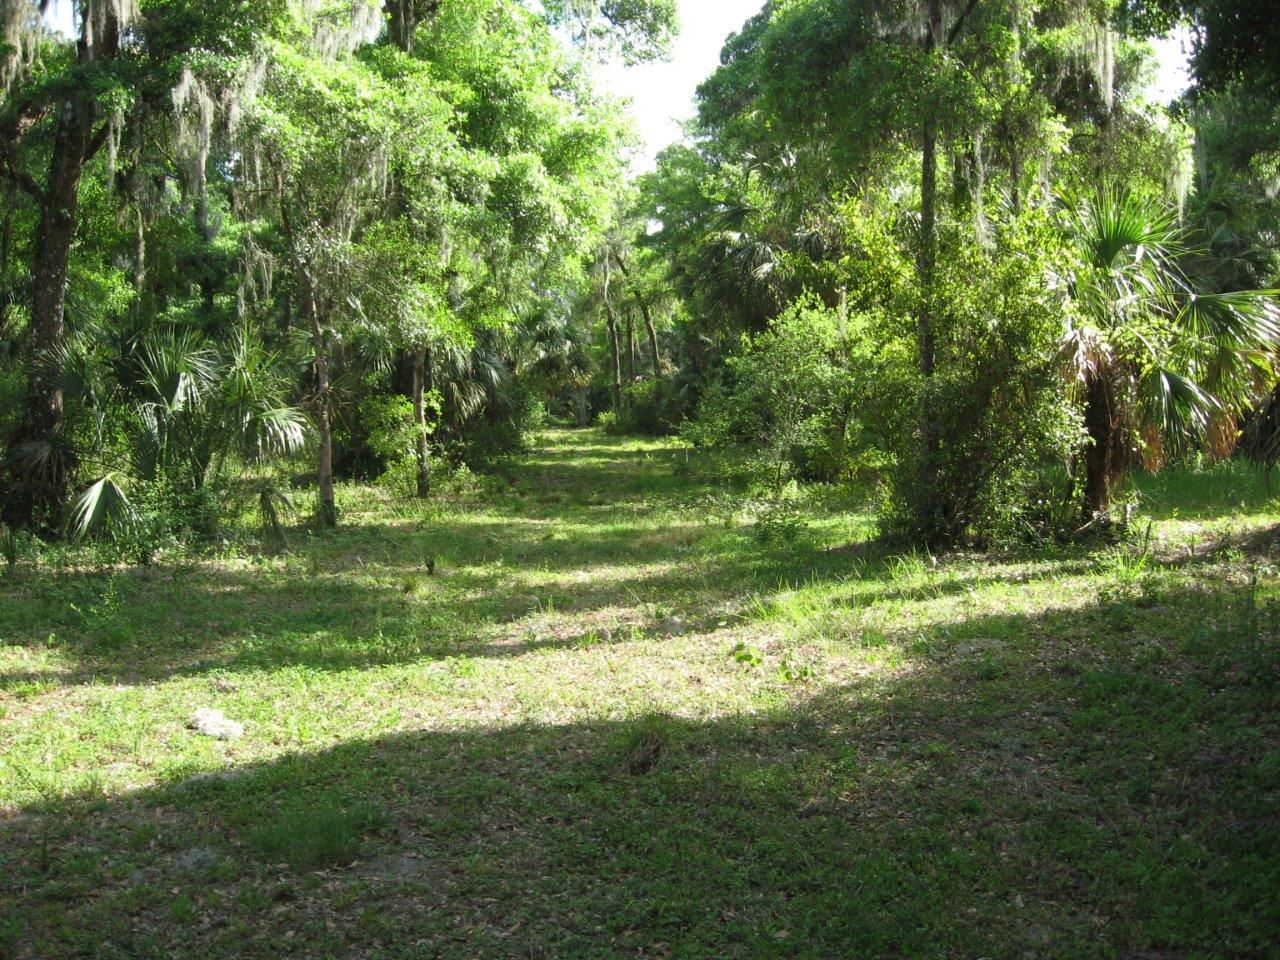 Brantley Road 5 Acre LOT 1 in Lithia, Florida